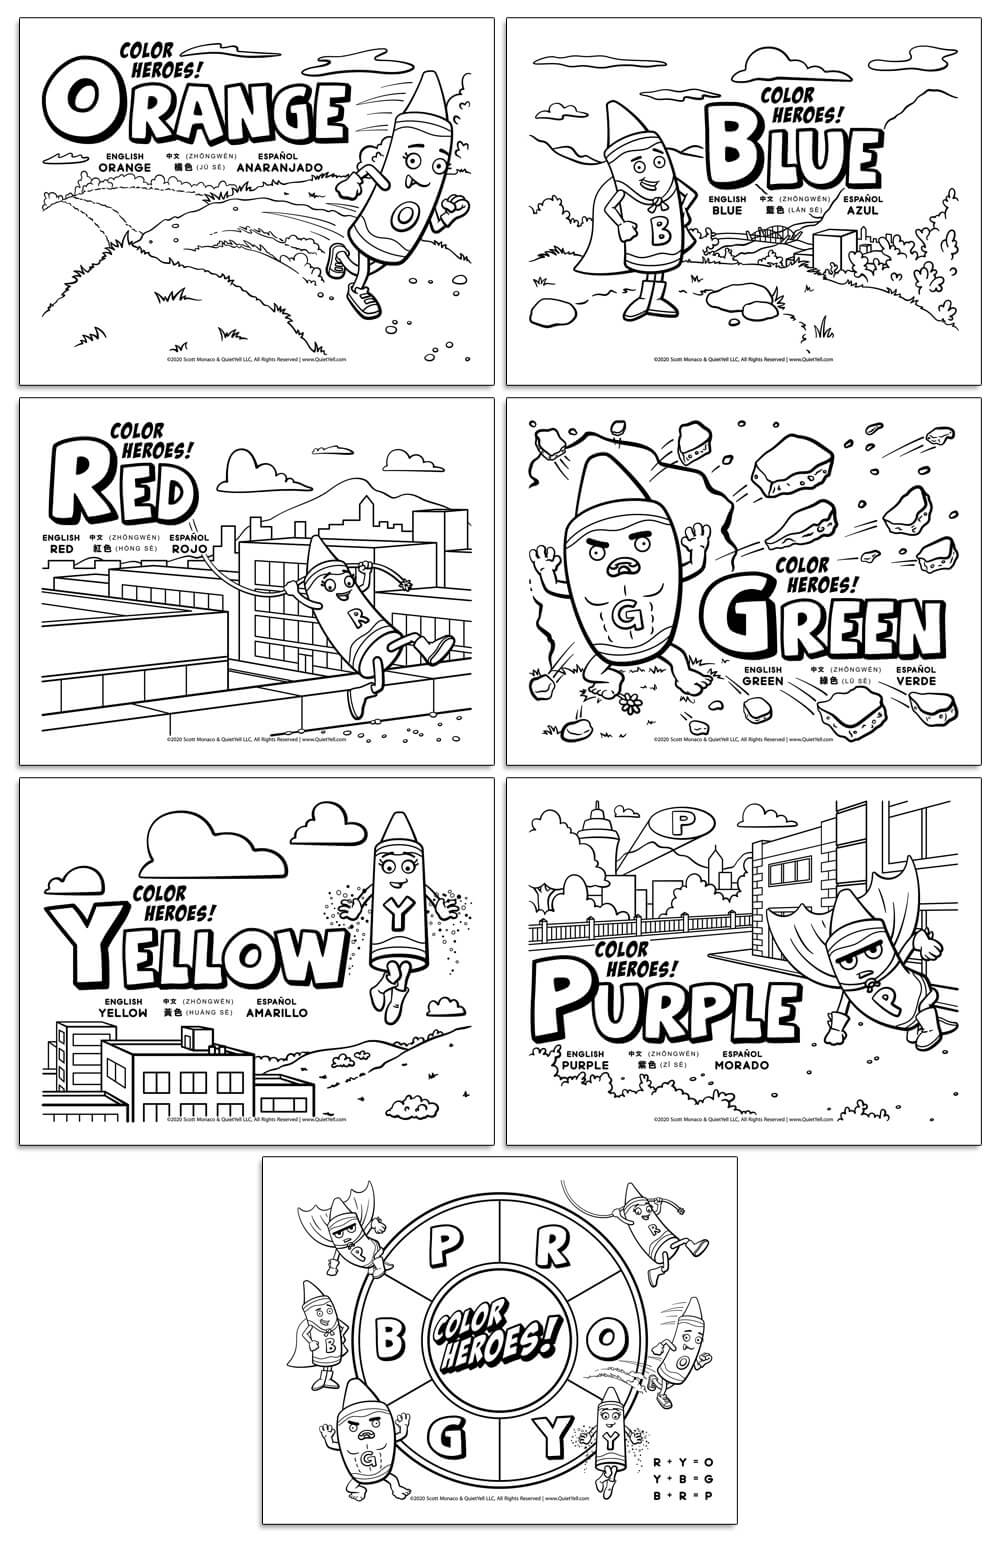 Coloring Activity Sheet to Learn Colors in English, Chinese, and Spanish by Scott Monaco of QuietYell LLC | www.QuietYell.com